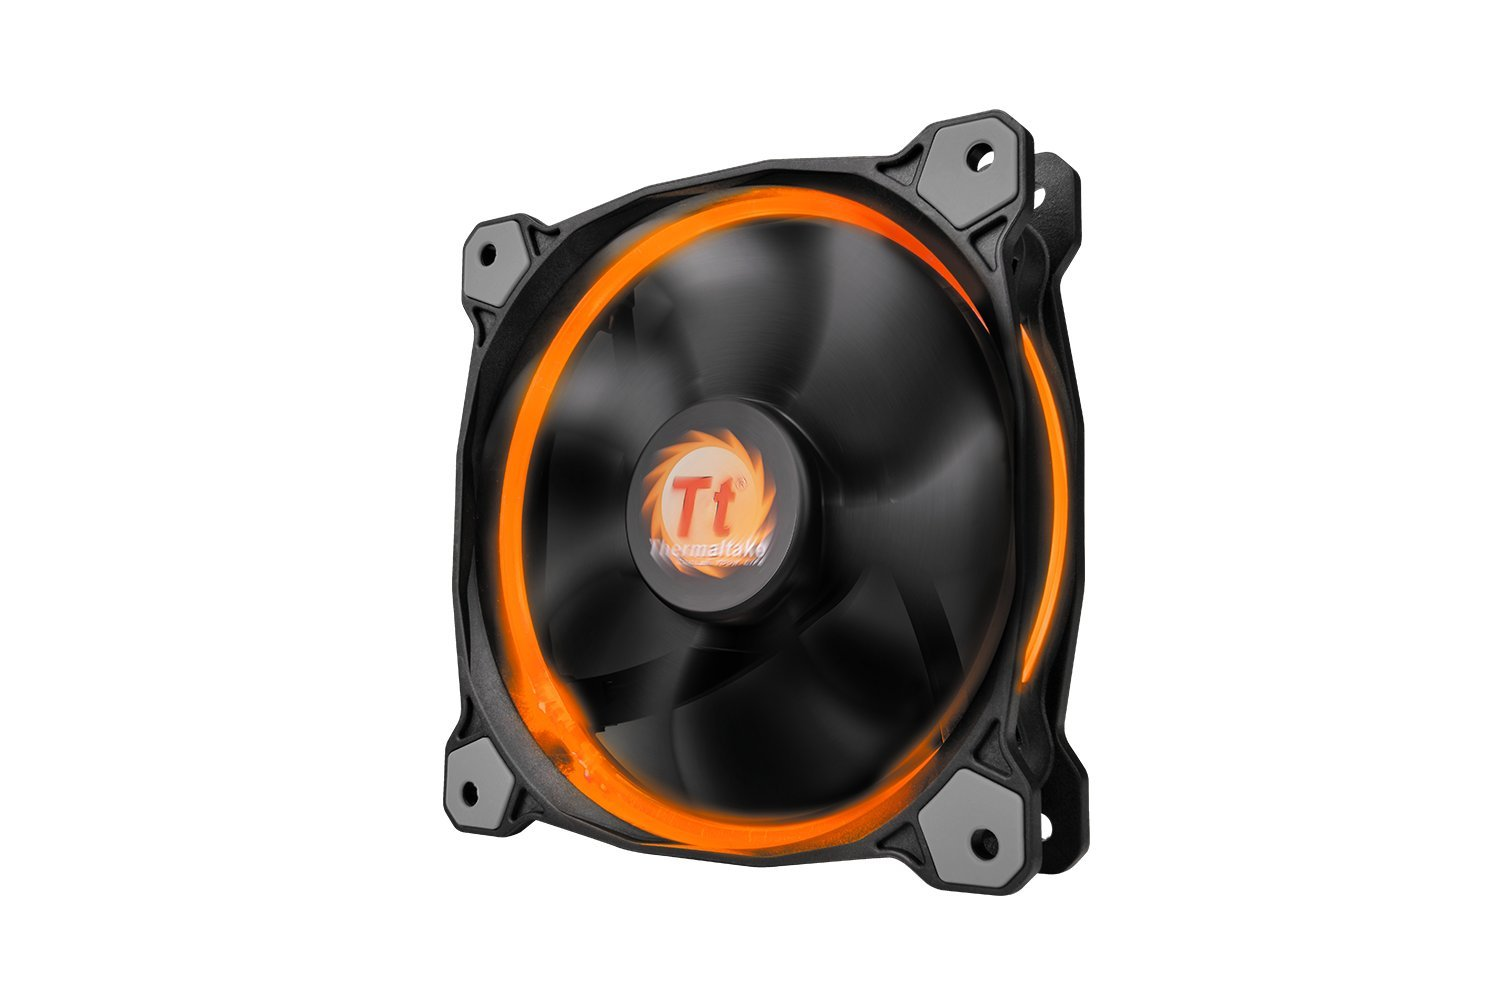 Thermaltake Riing Plus 12 RGB TT Premium Edition 120mm Software Enabled 12 Controllable LED RGB 9 Blades Case//Radiator Fan Triple Pack CL-F053-PL12SW-A Thermaltake USA Direct